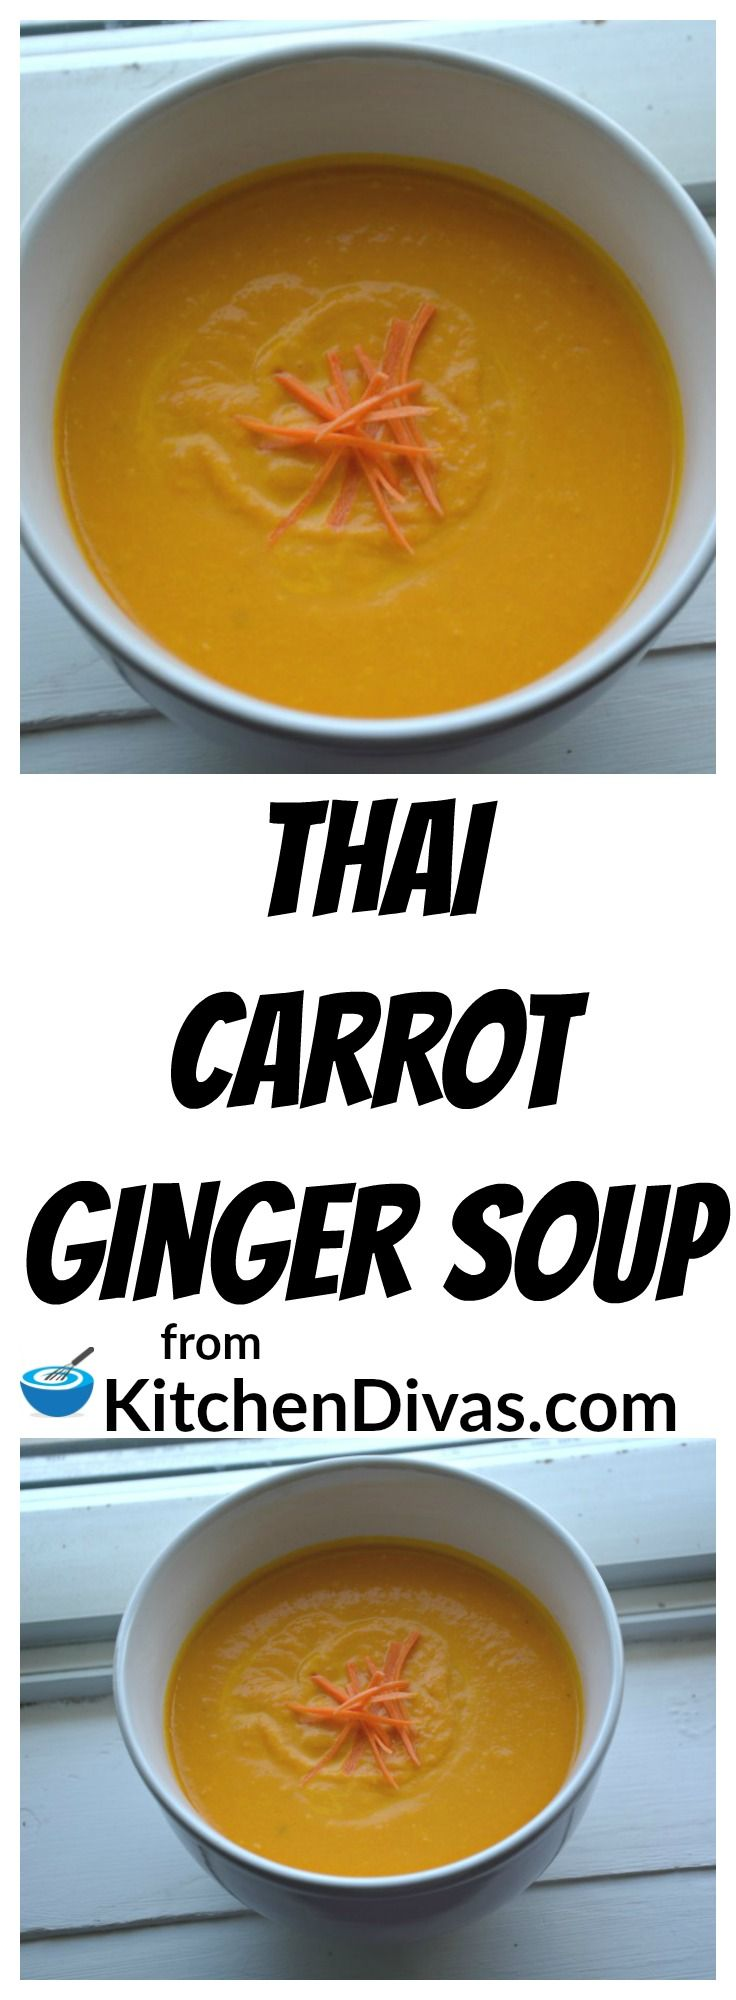 This recipe for Thai Carrot Ginger Soup is delicious every time! My late friend Marcel first discovered this recipe and we have been making it ever since. We can't seem to help it. We think this soup is that good. You will too!